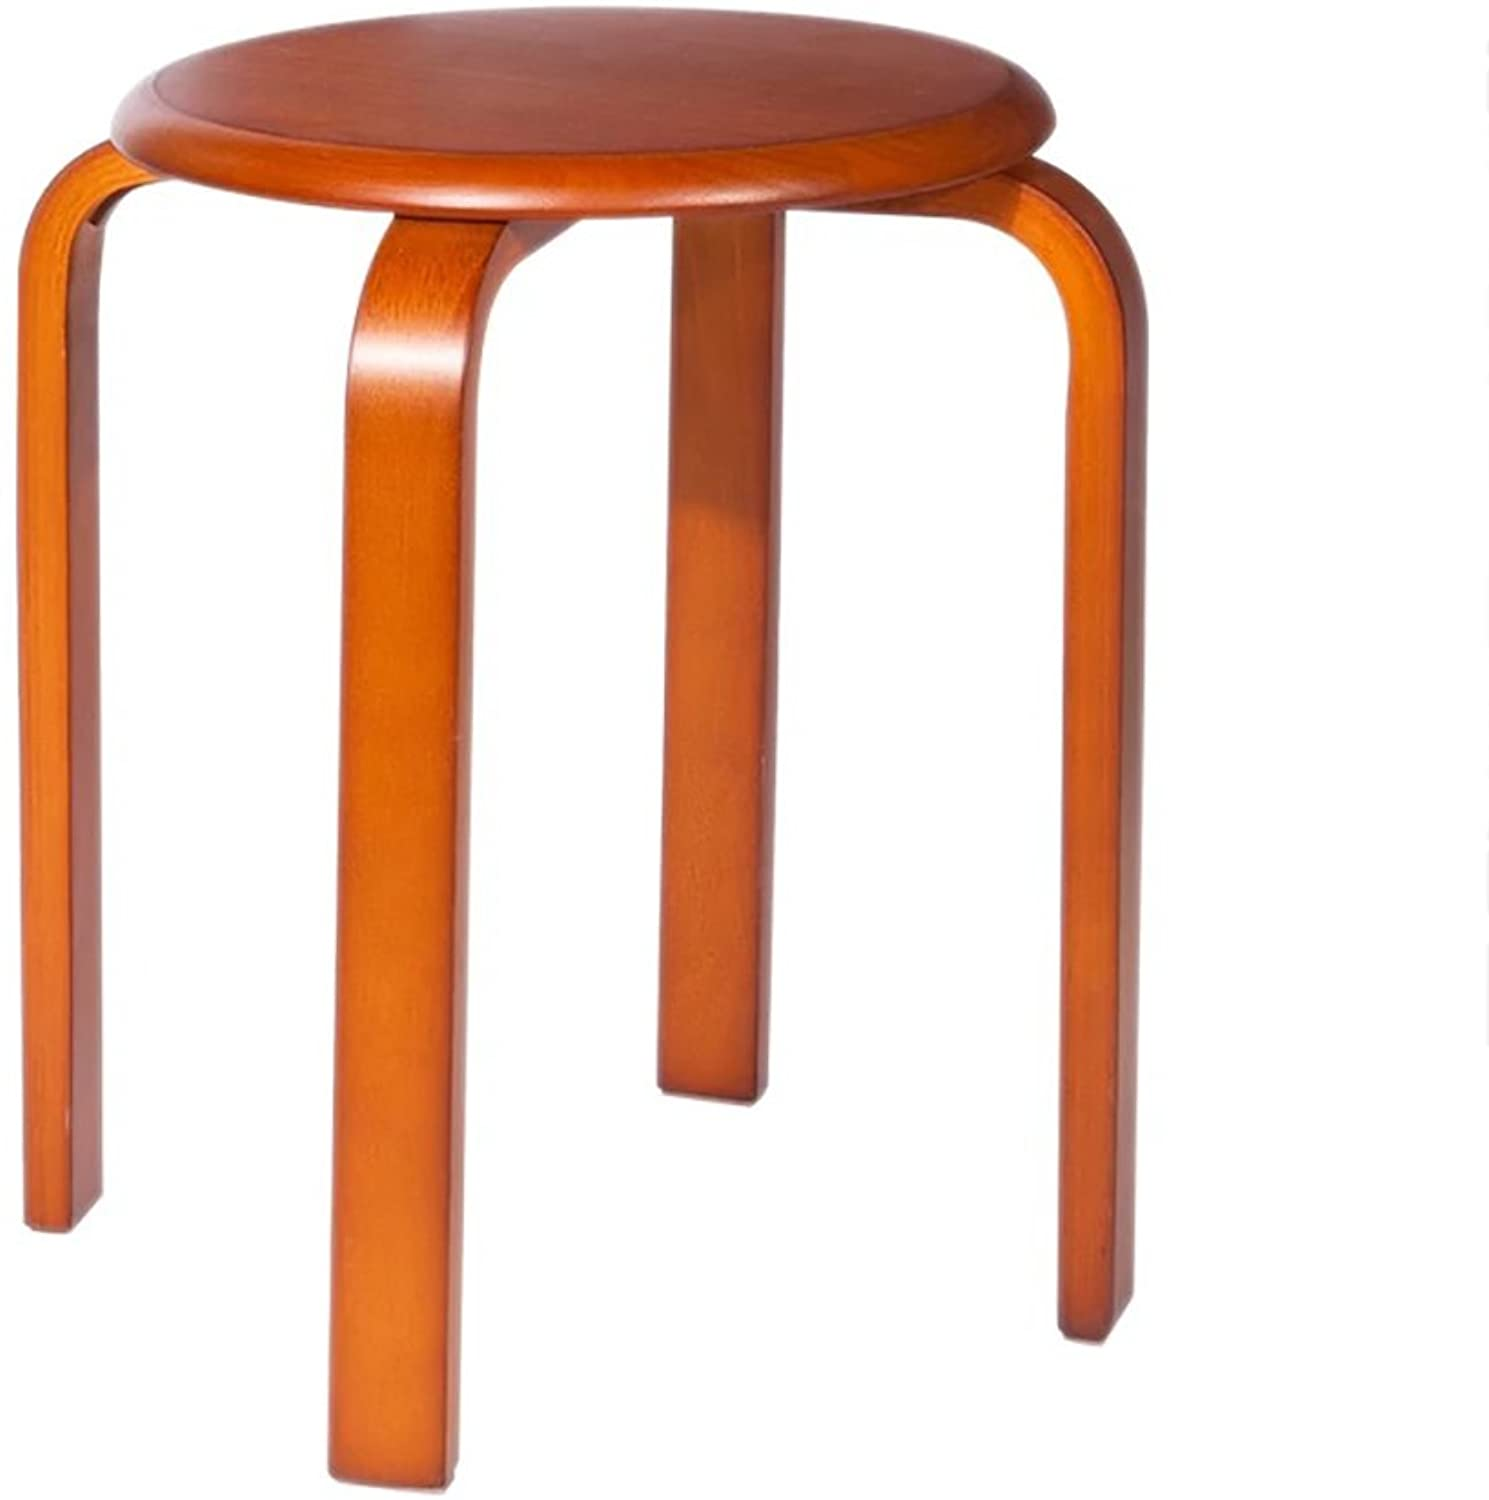 WENJUN Solid Wood Stool Stool Home Dining Table Stool Fashion Creative Small Wooden Bench Adult Wooden Stool Bench (color   2)